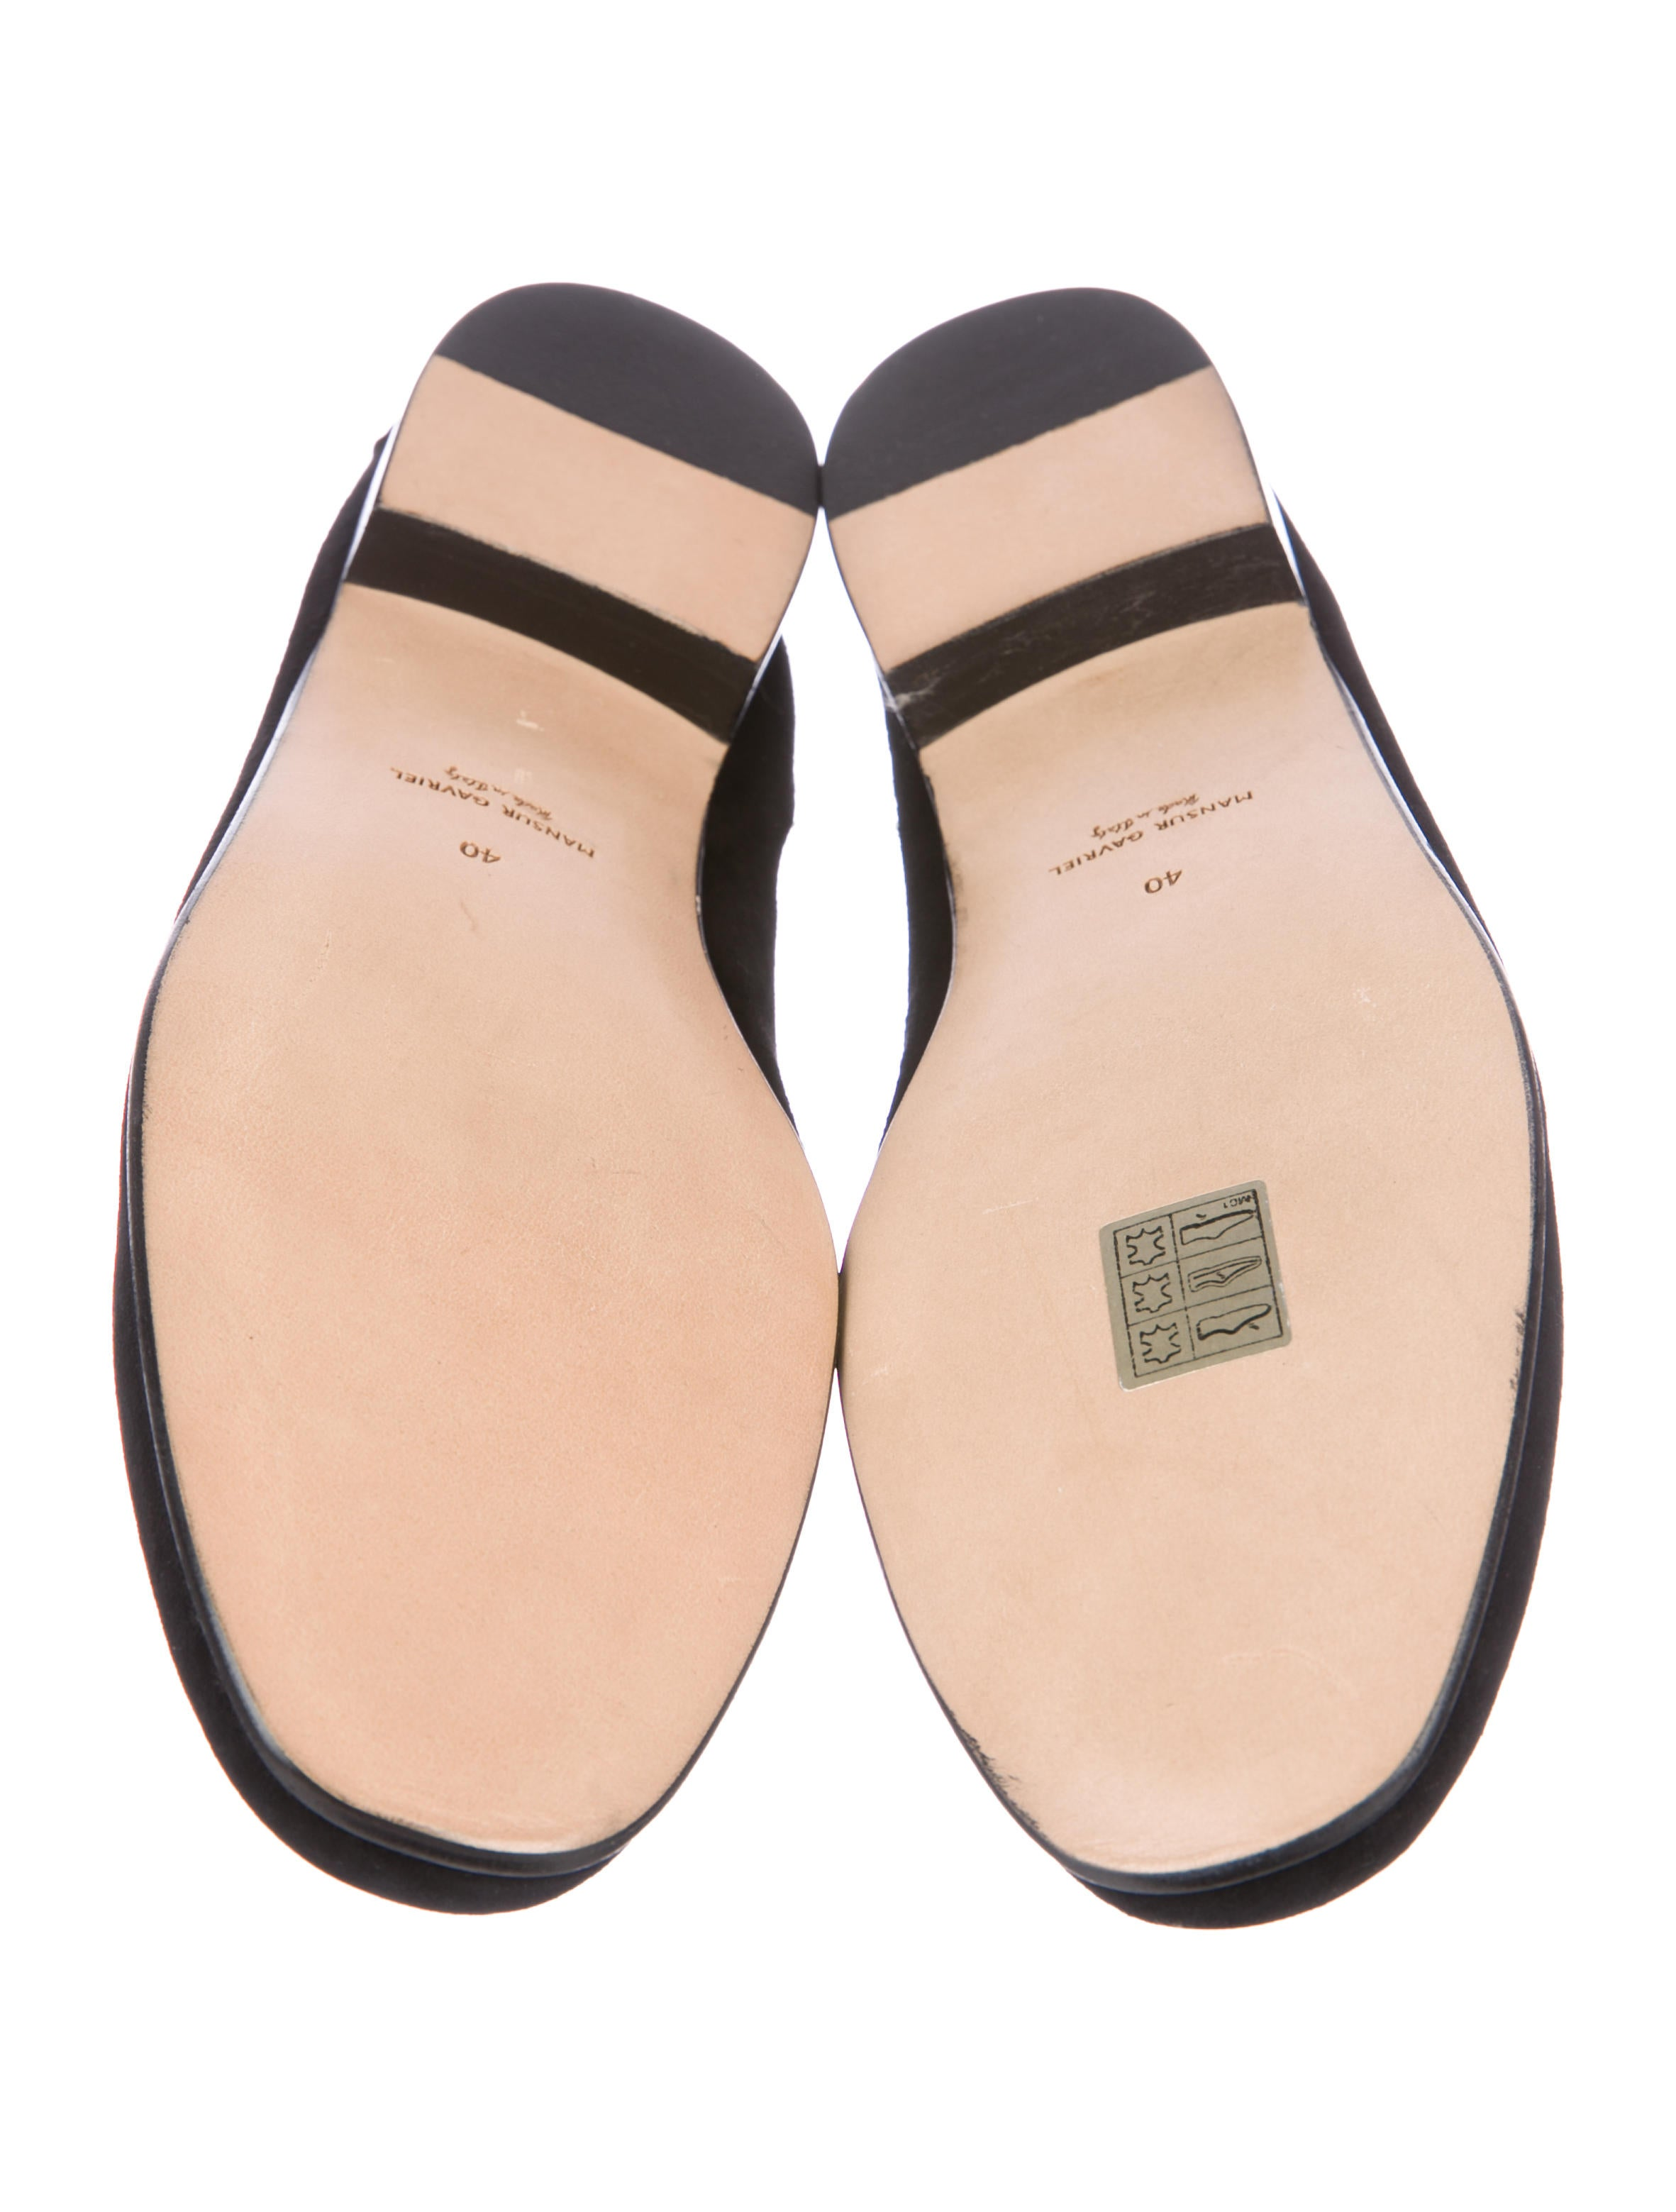 Mansur Gavriel Suede Round-Toe Loafers w/ Tags free shipping view professional for sale new styles cheap online FlgkIhN2W